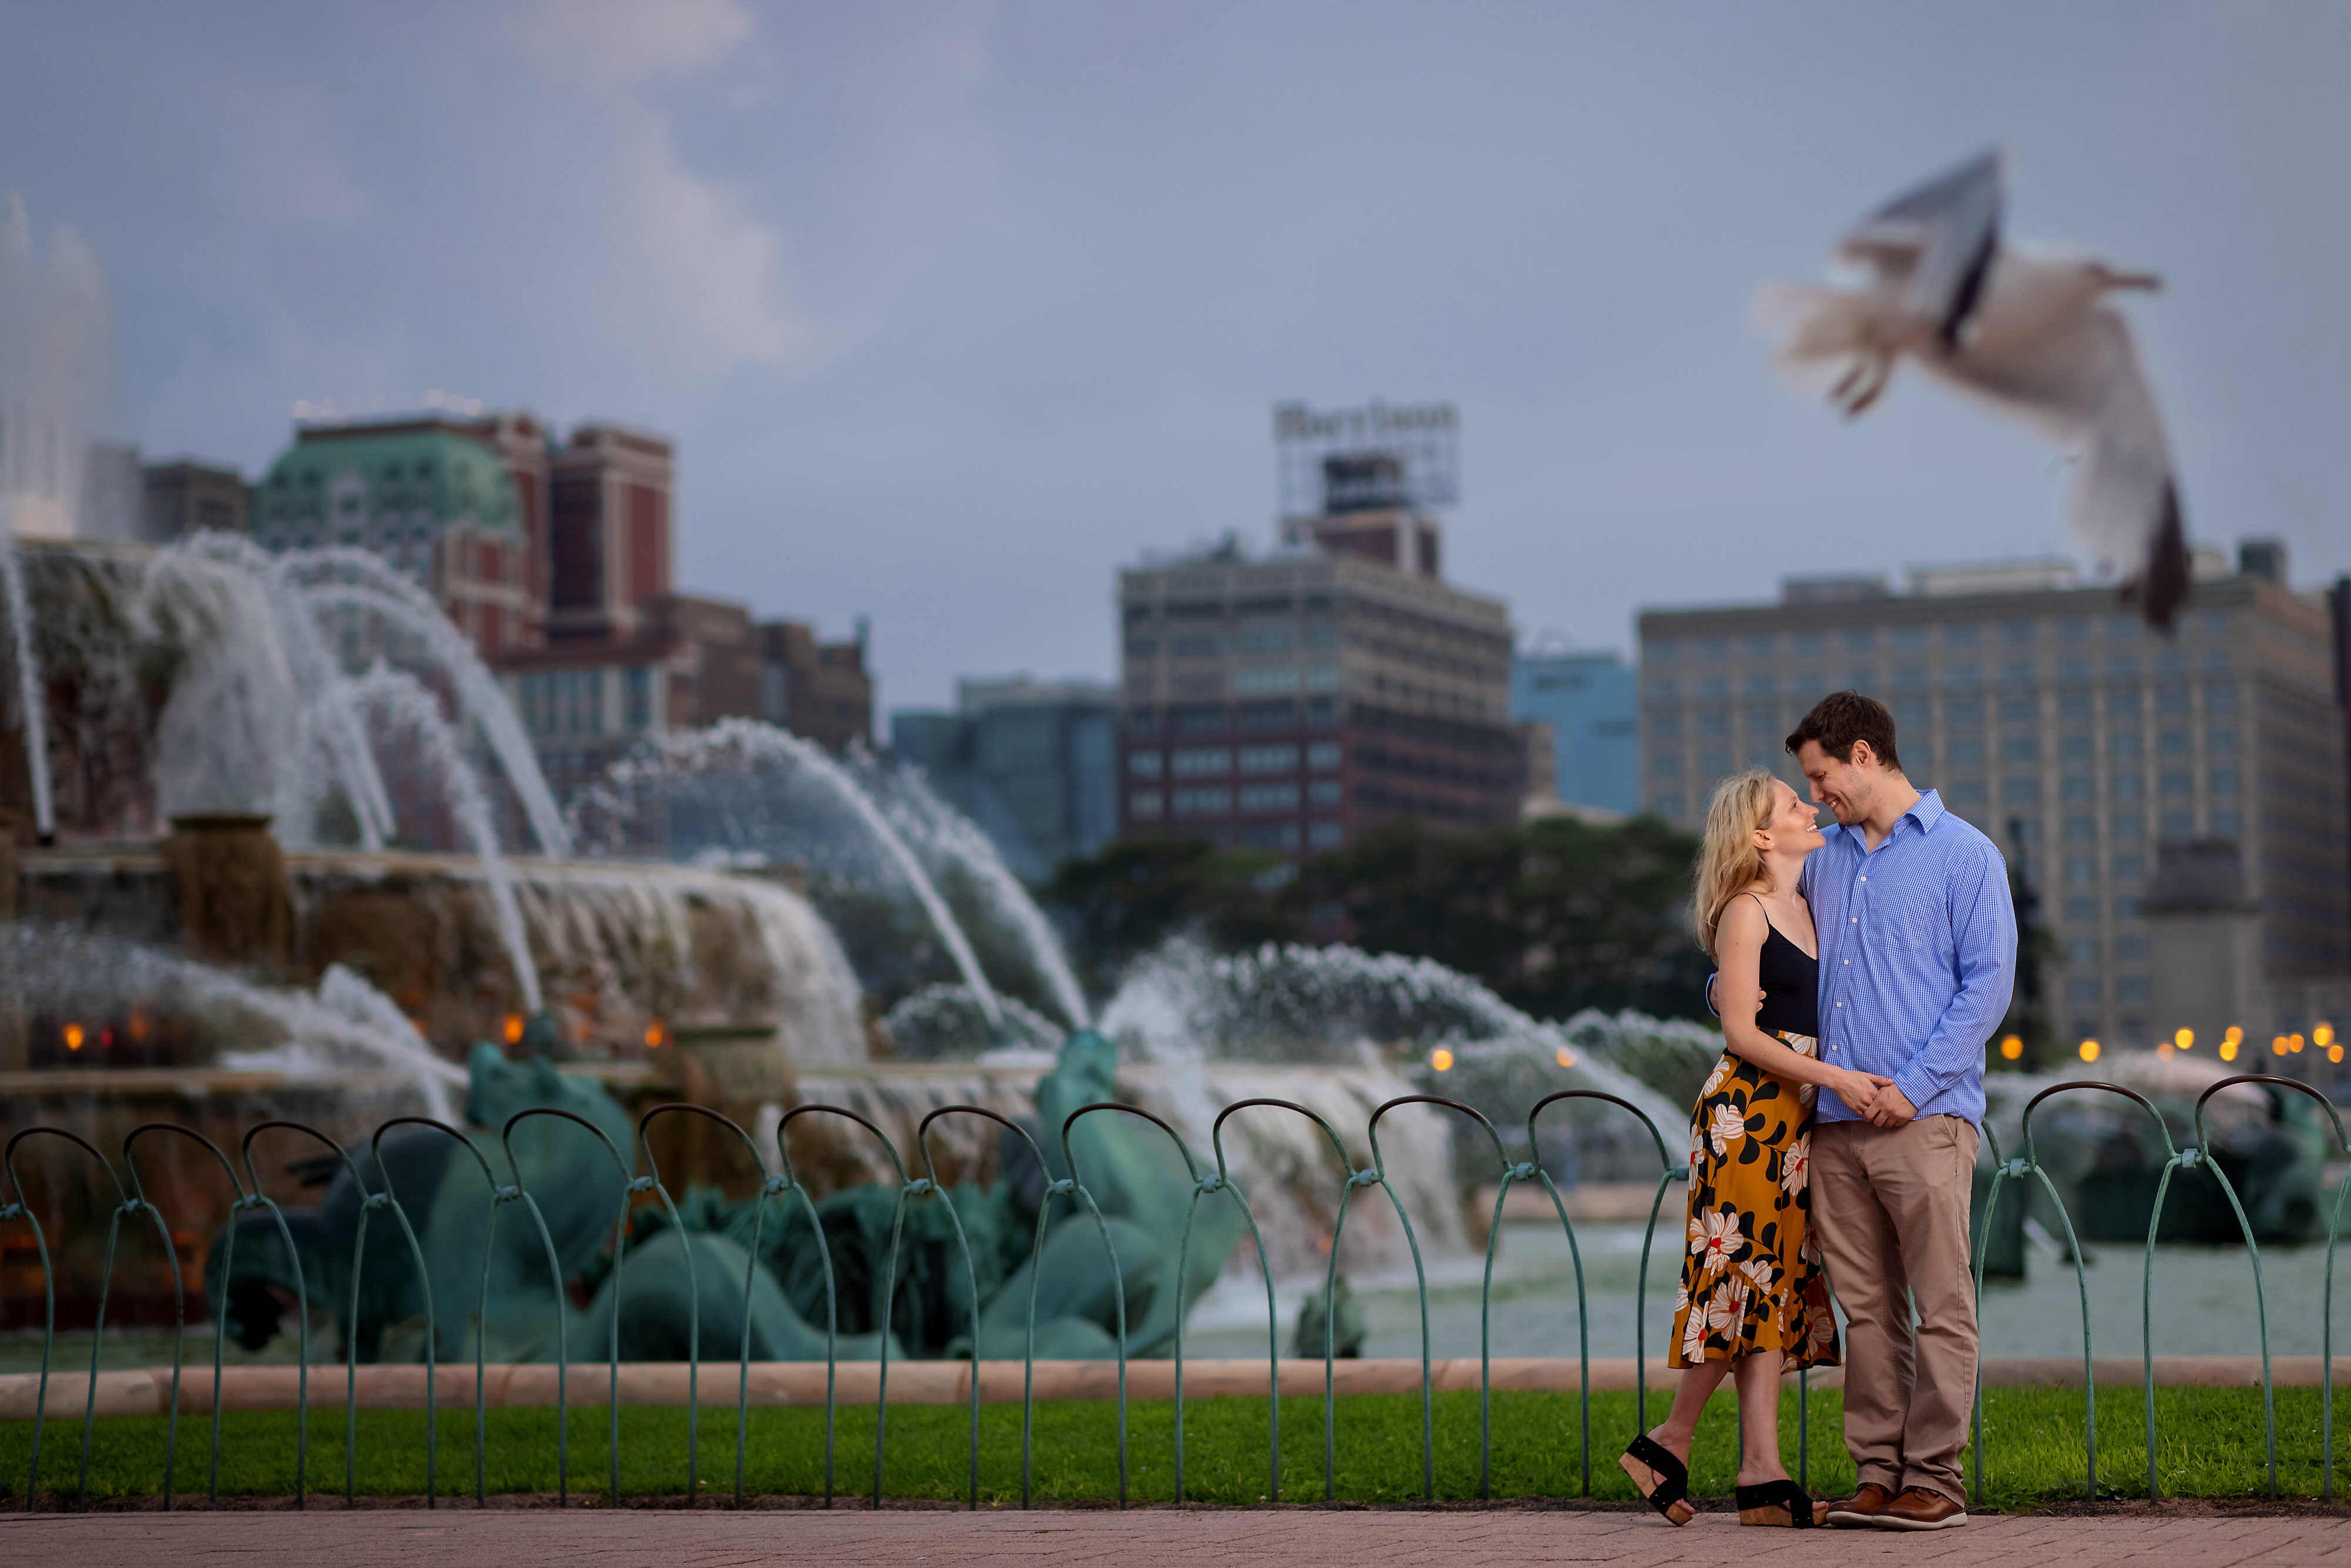 Couple poses for engagement photos in front of Buckingham Fountain in Grant Park with a seagull flying by in the foreground